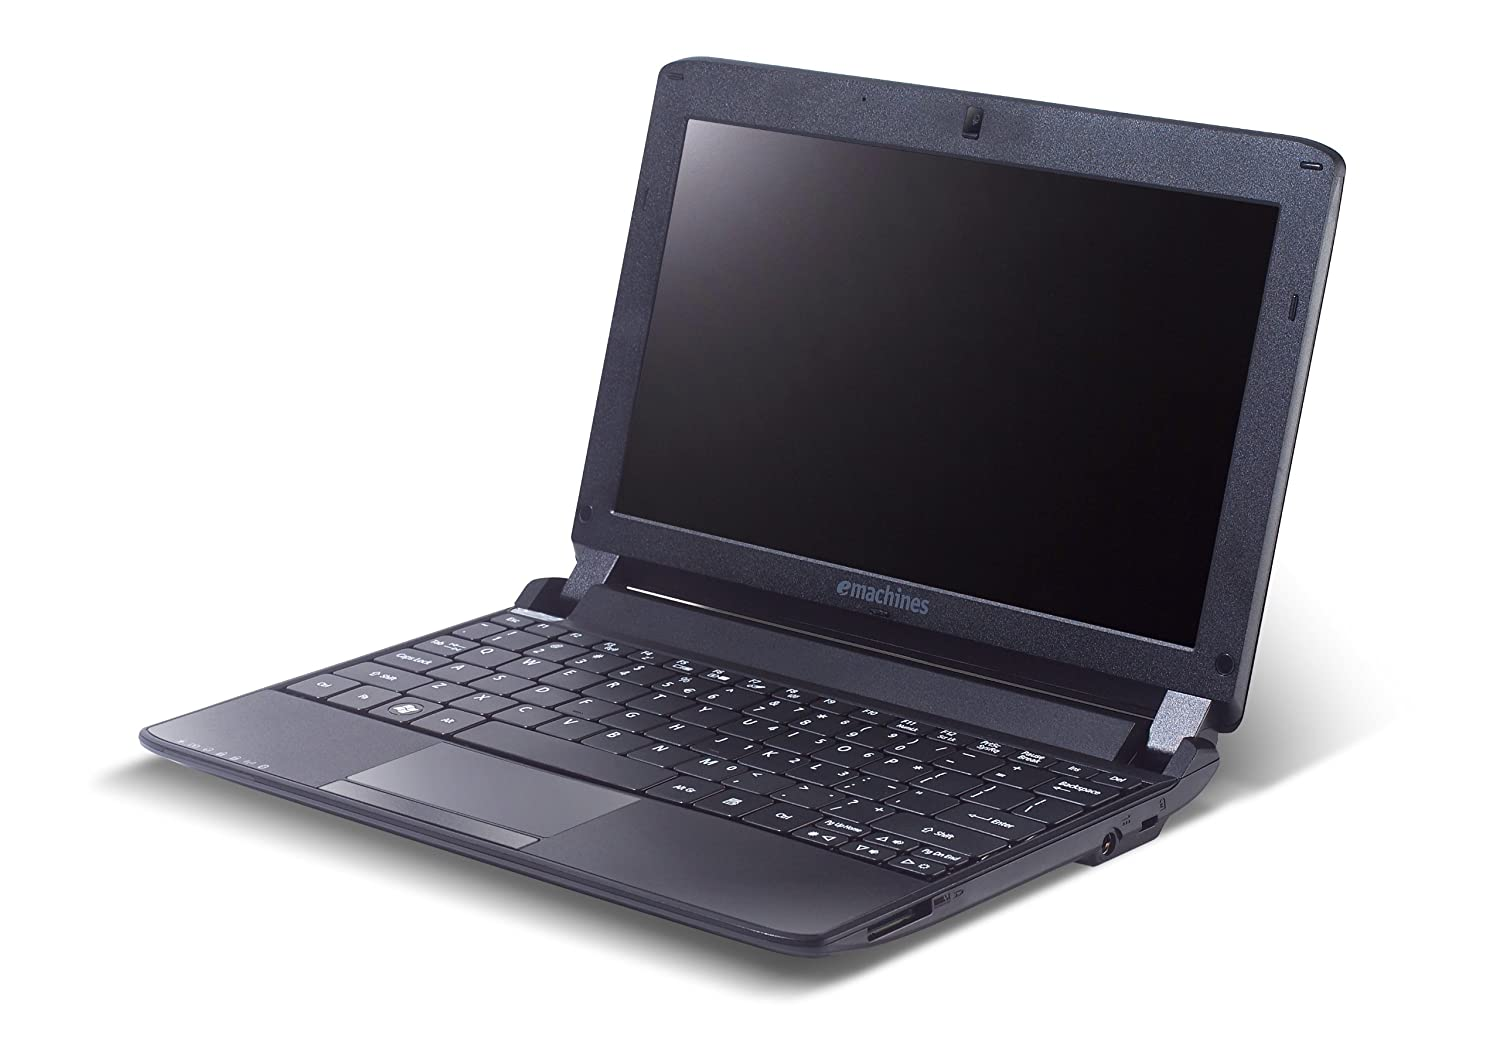 EMACHINE E350 DRIVERS WINDOWS 7